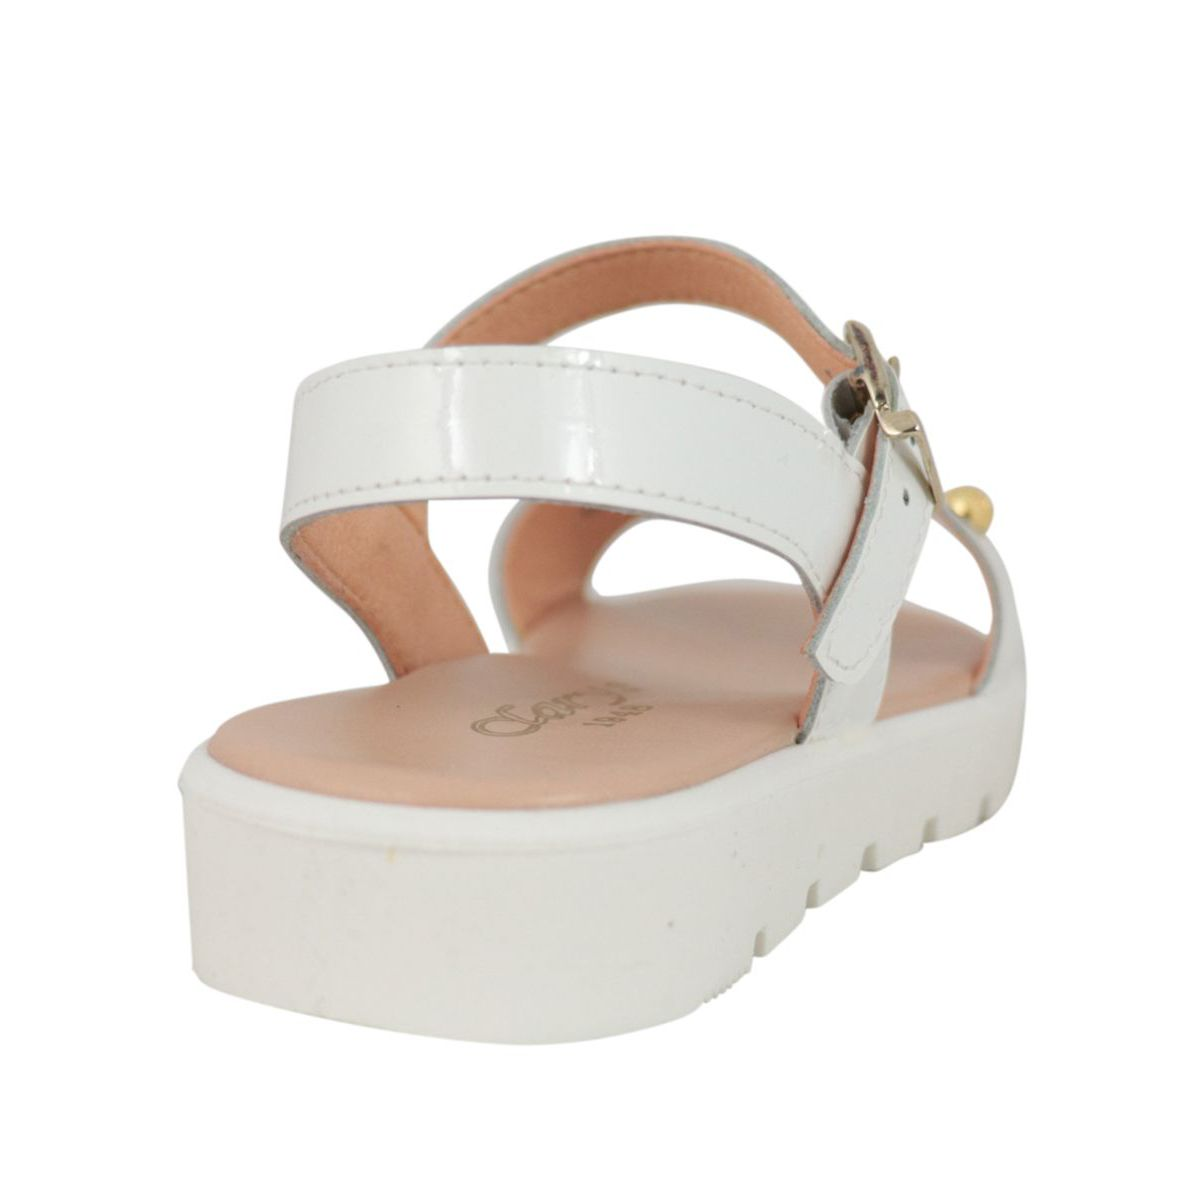 Leather sandal with buckle and contrasting inserts White Clarys